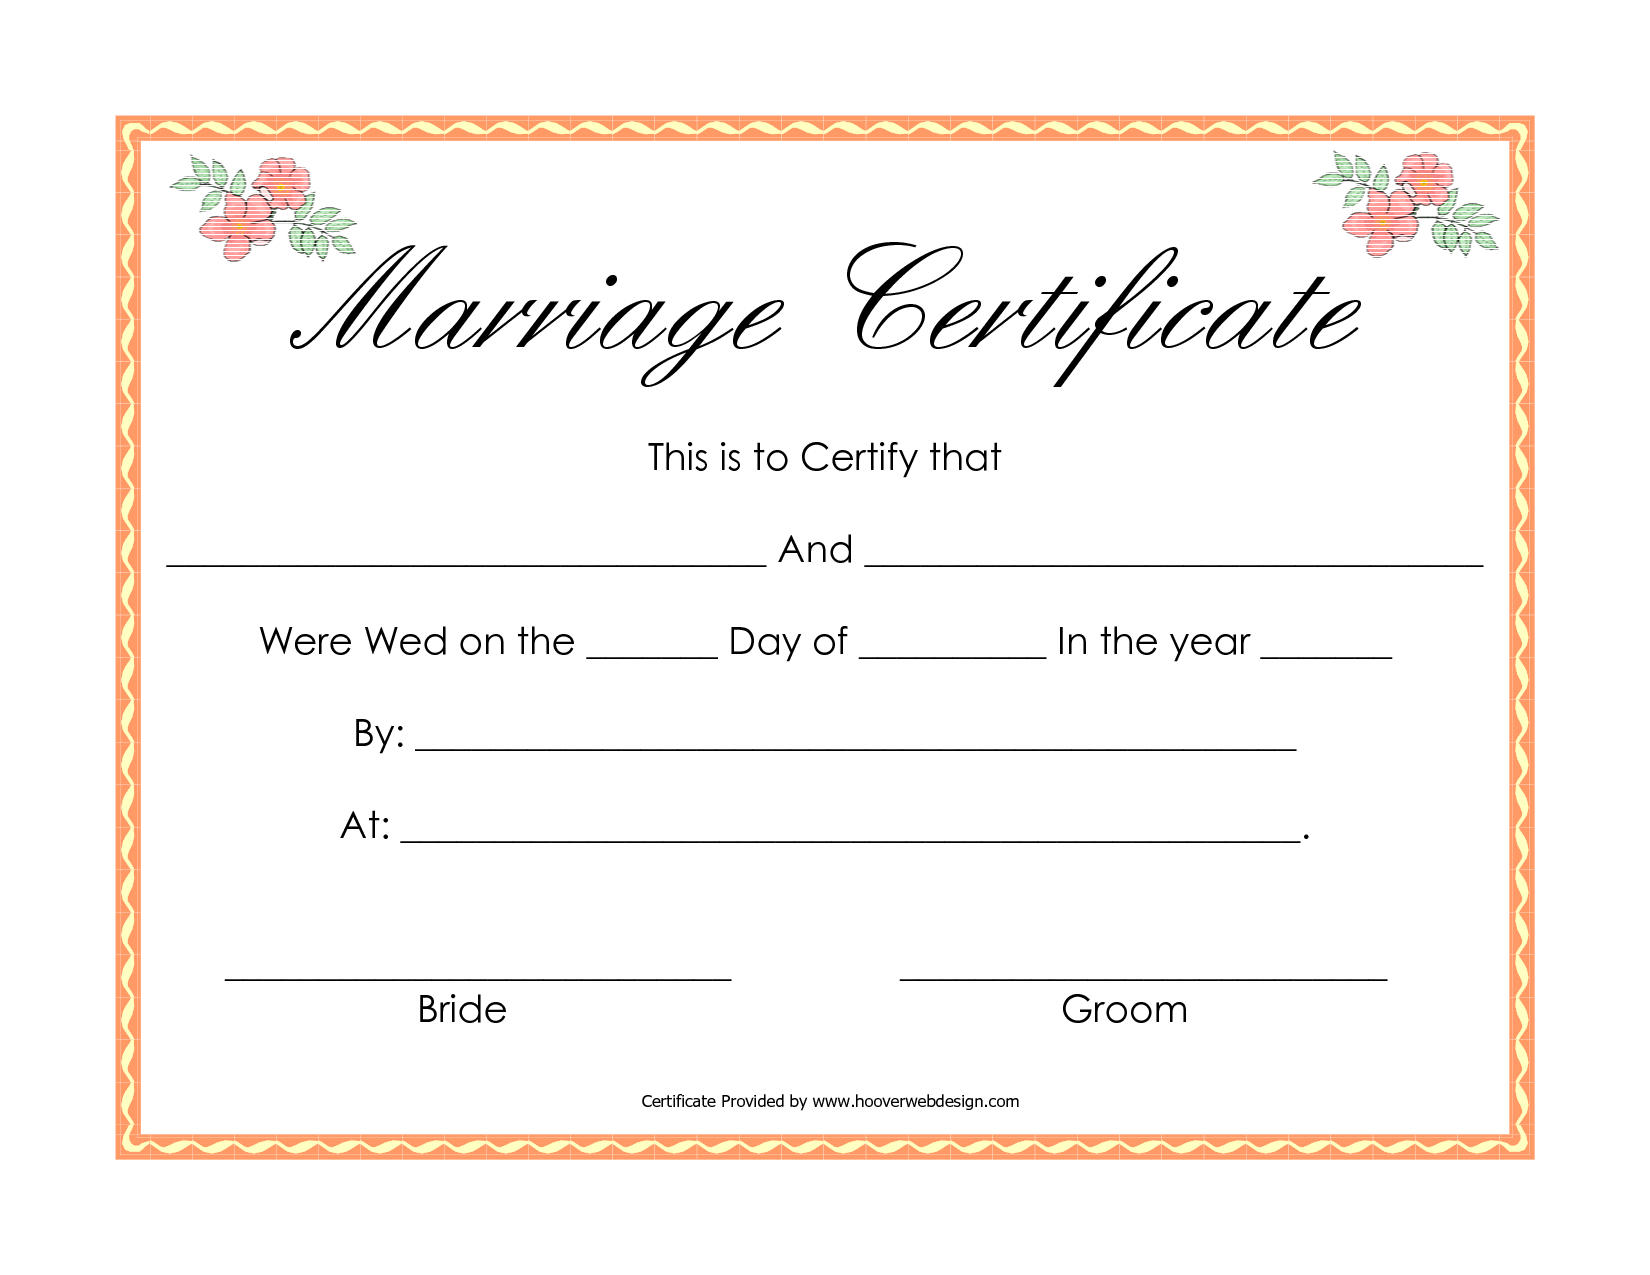 Fake Marriage Certificate | Angela | Marriage Certificate, Wedding - Fake Marriage Certificate Printable Free